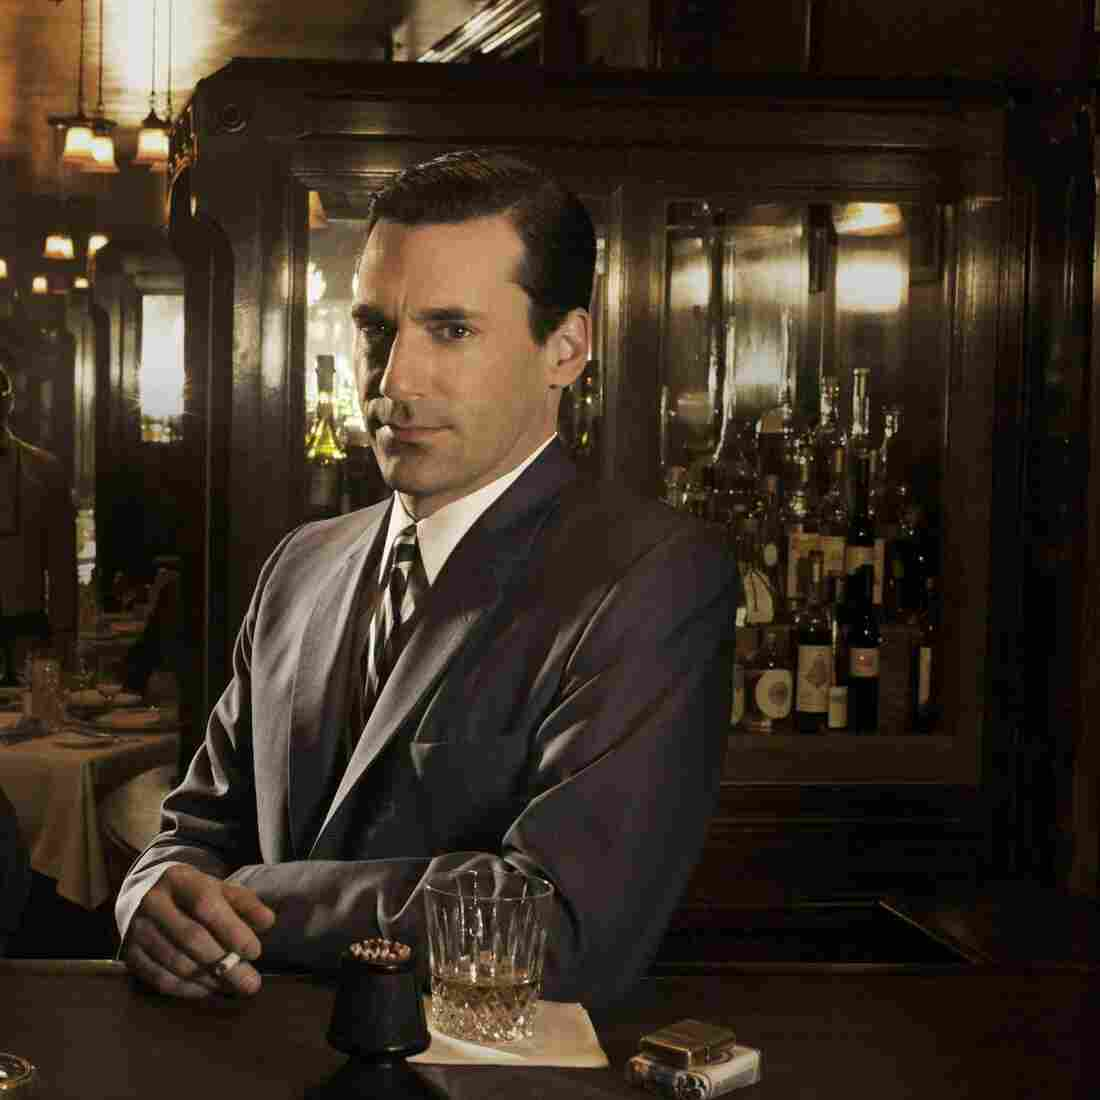 Drinking With 'Mad Men': Cocktail Culture And The Myth Of Don Draper